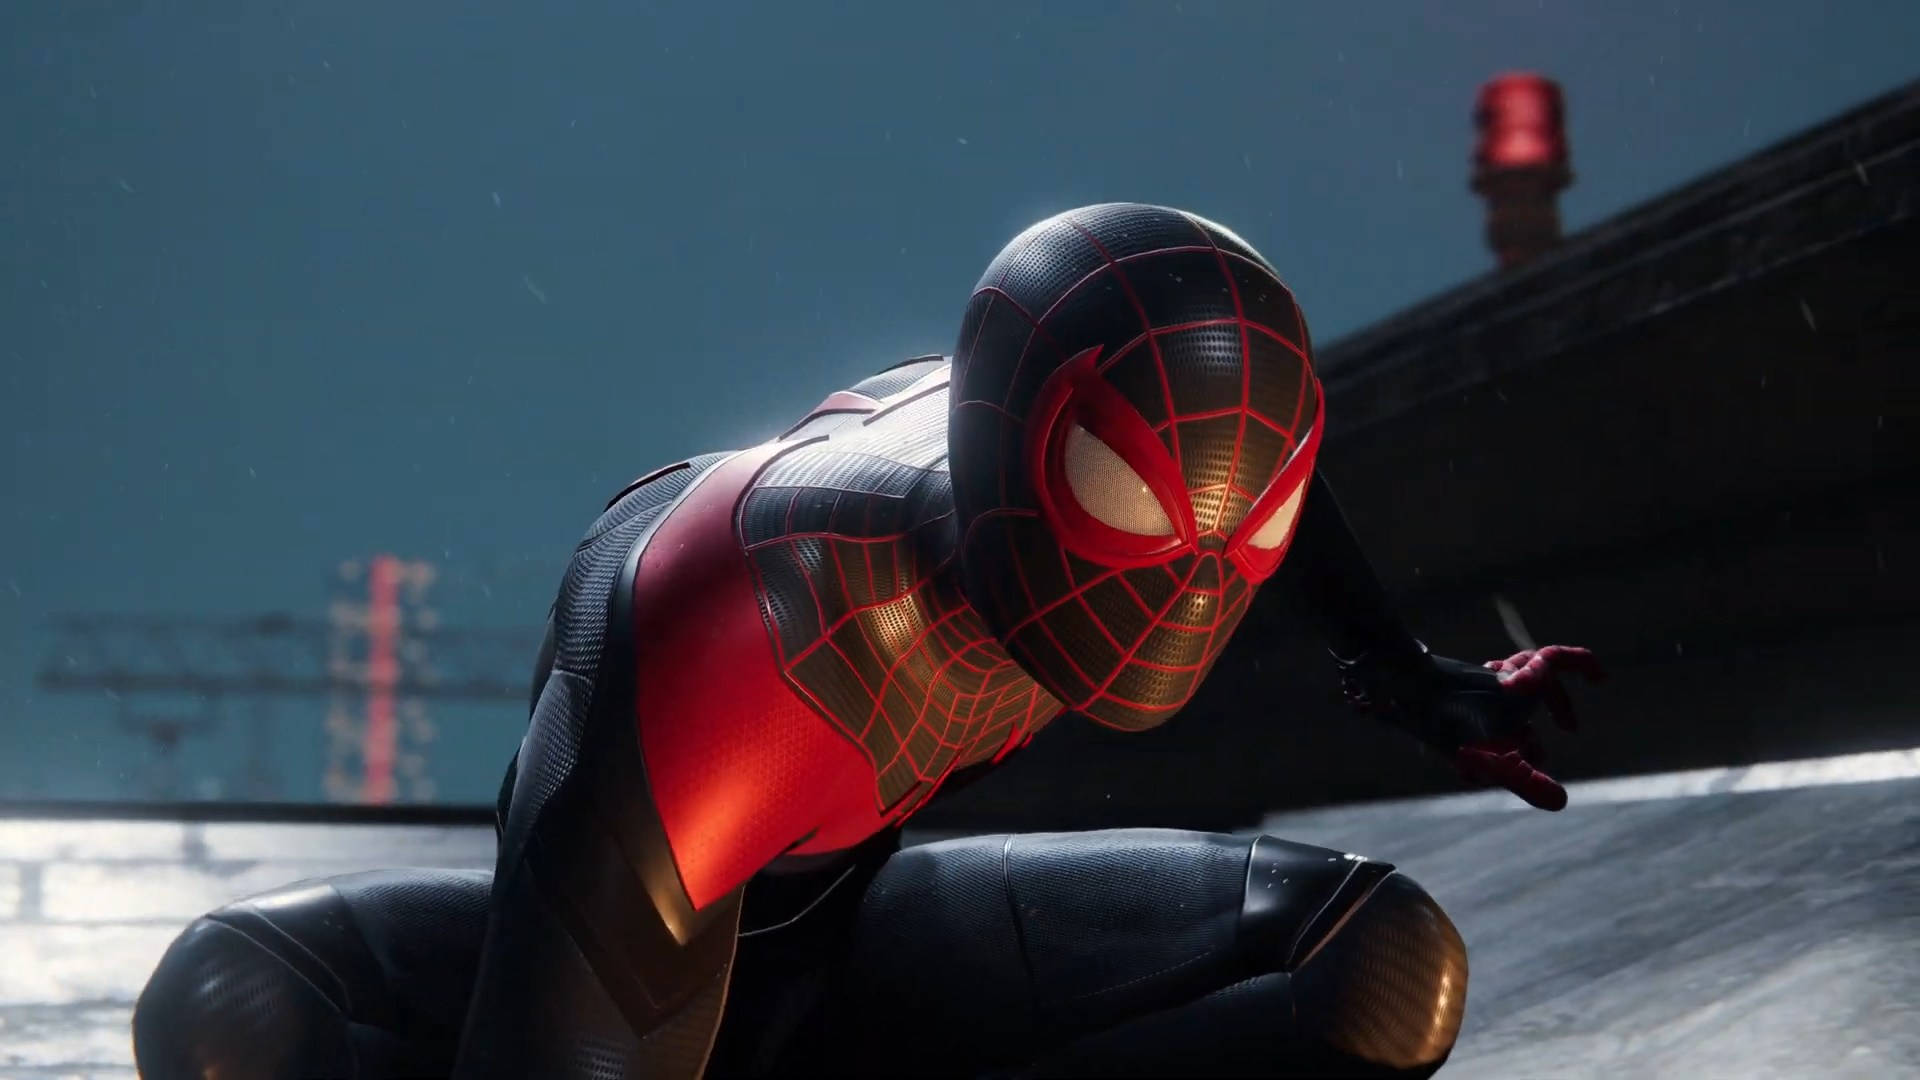 Trailer, Sony, Playstation, Gameplay, PlayStation 5, ps5, Marvel, Spider-Man, Marvel's Spider-Man, Marvel's Spider-Man Miles Morales